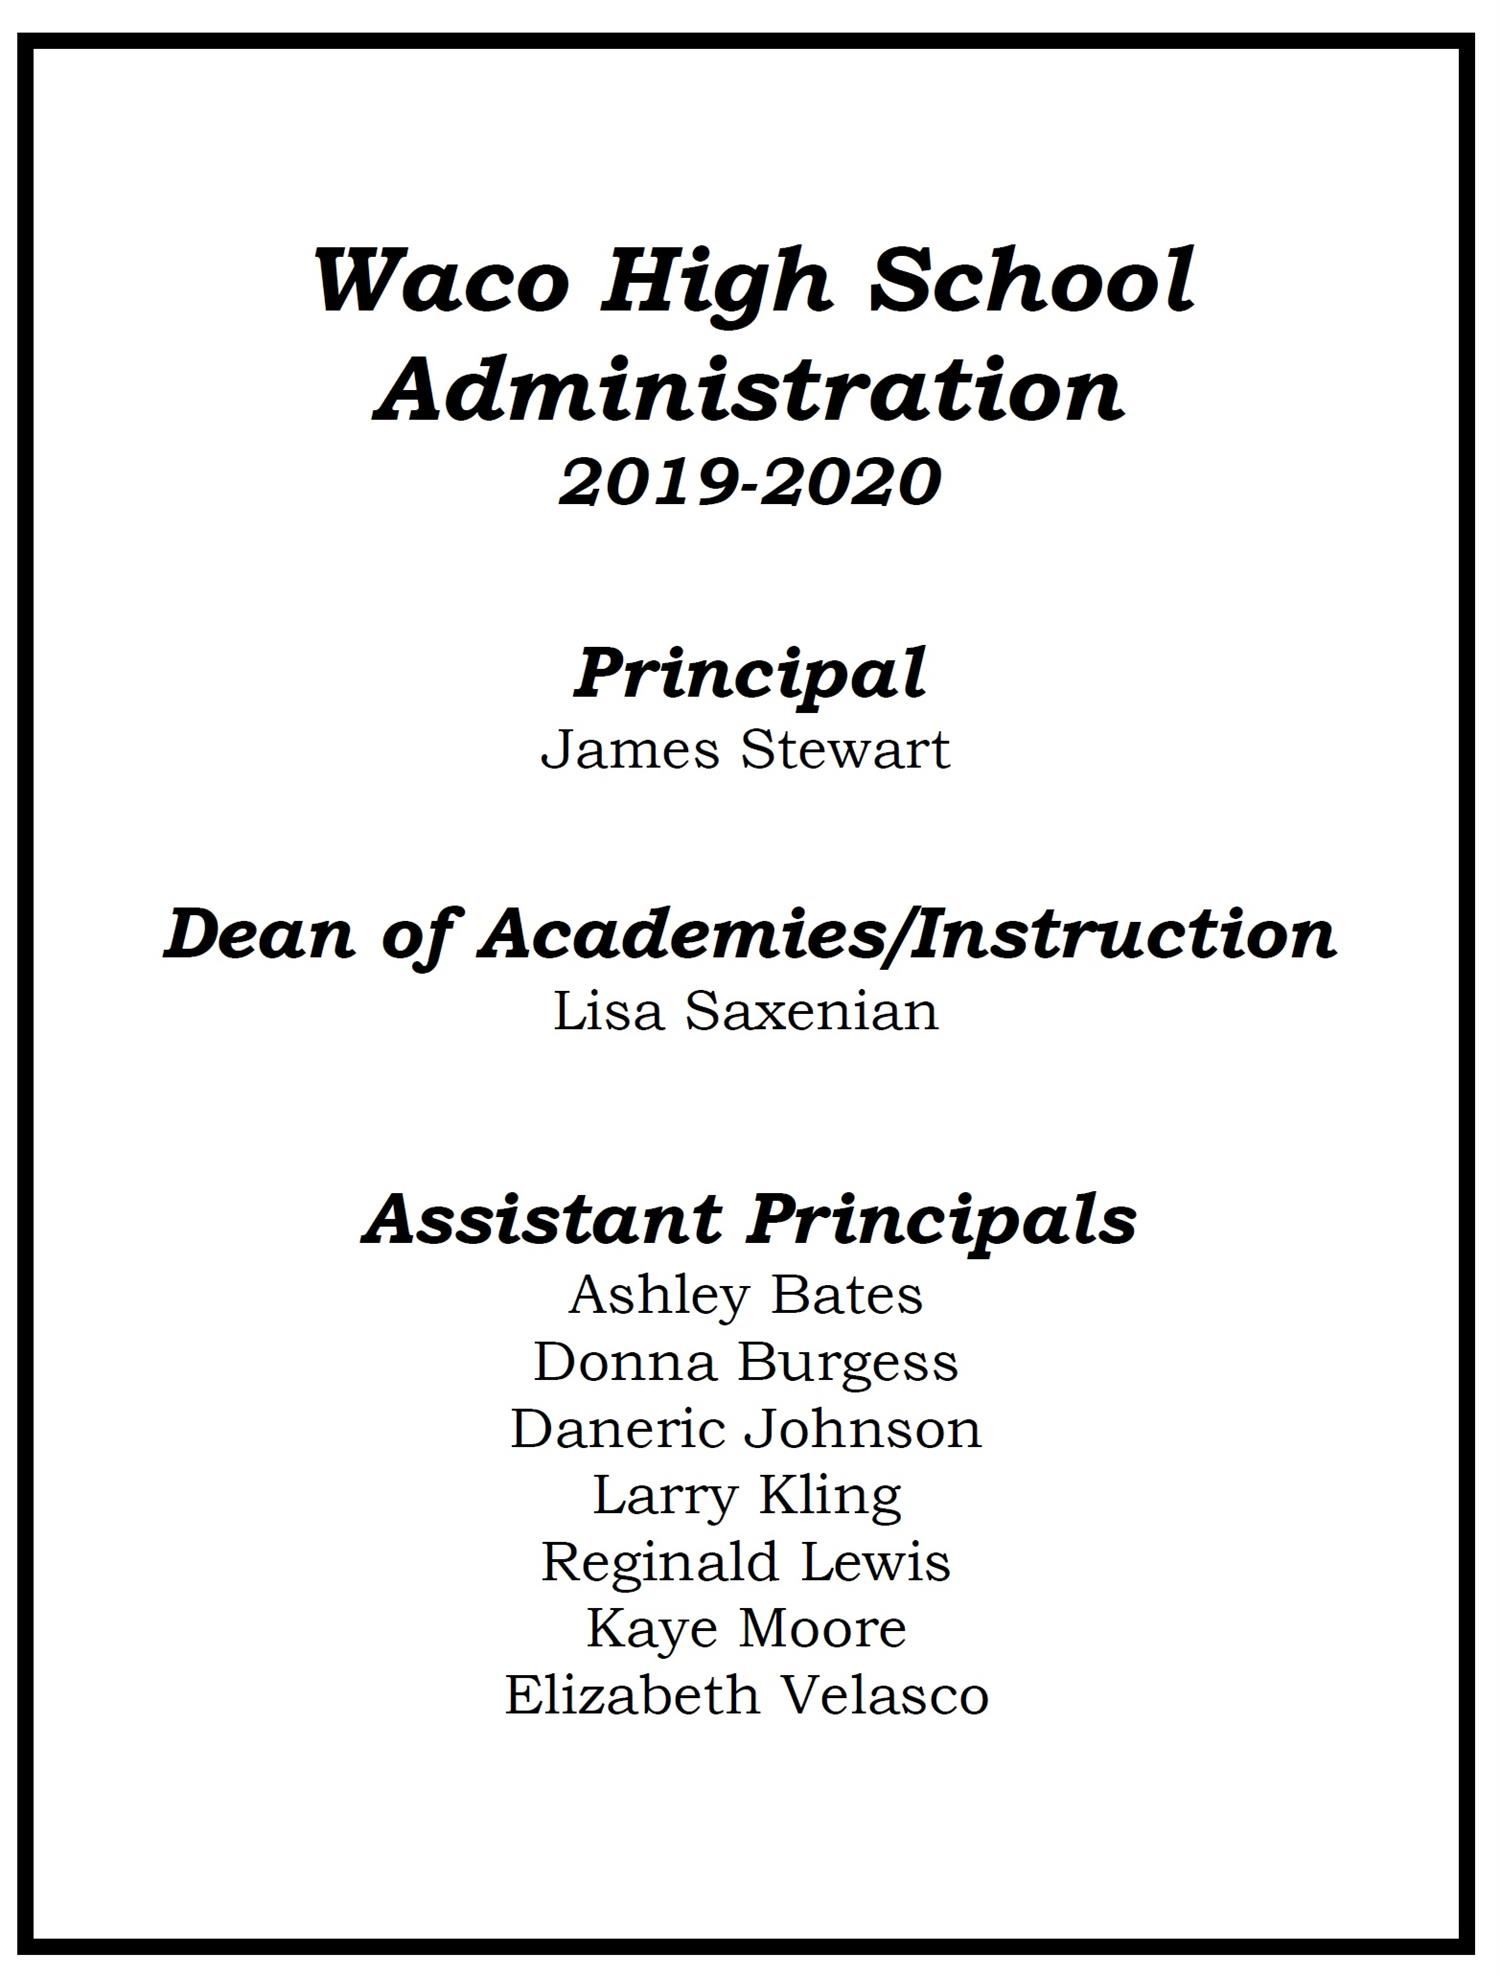 2019-2020 Administration